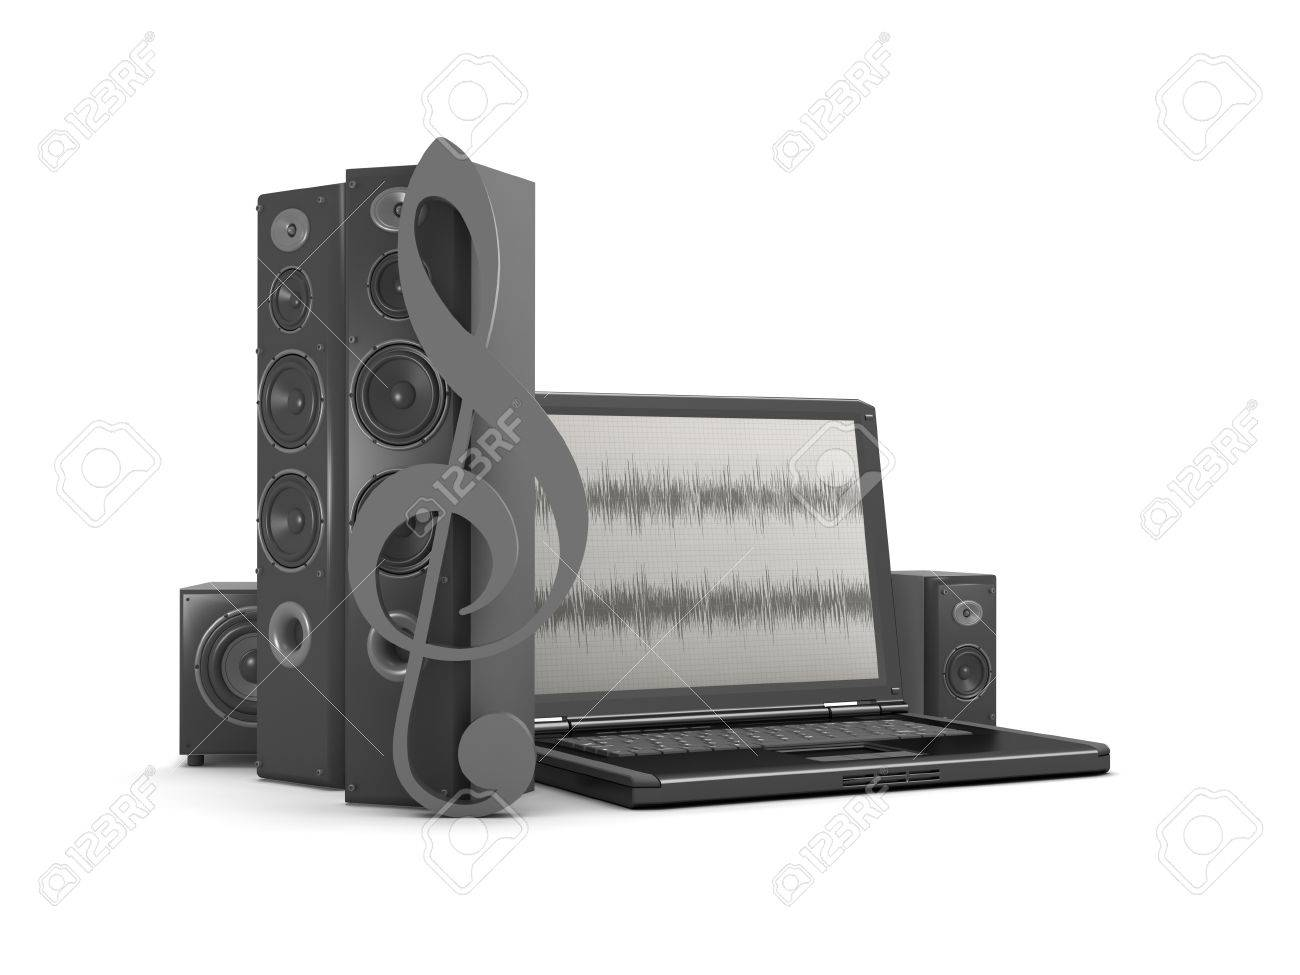 Laptop With Audio Diagram On Screen And Audio Speakers Stock Photo ...